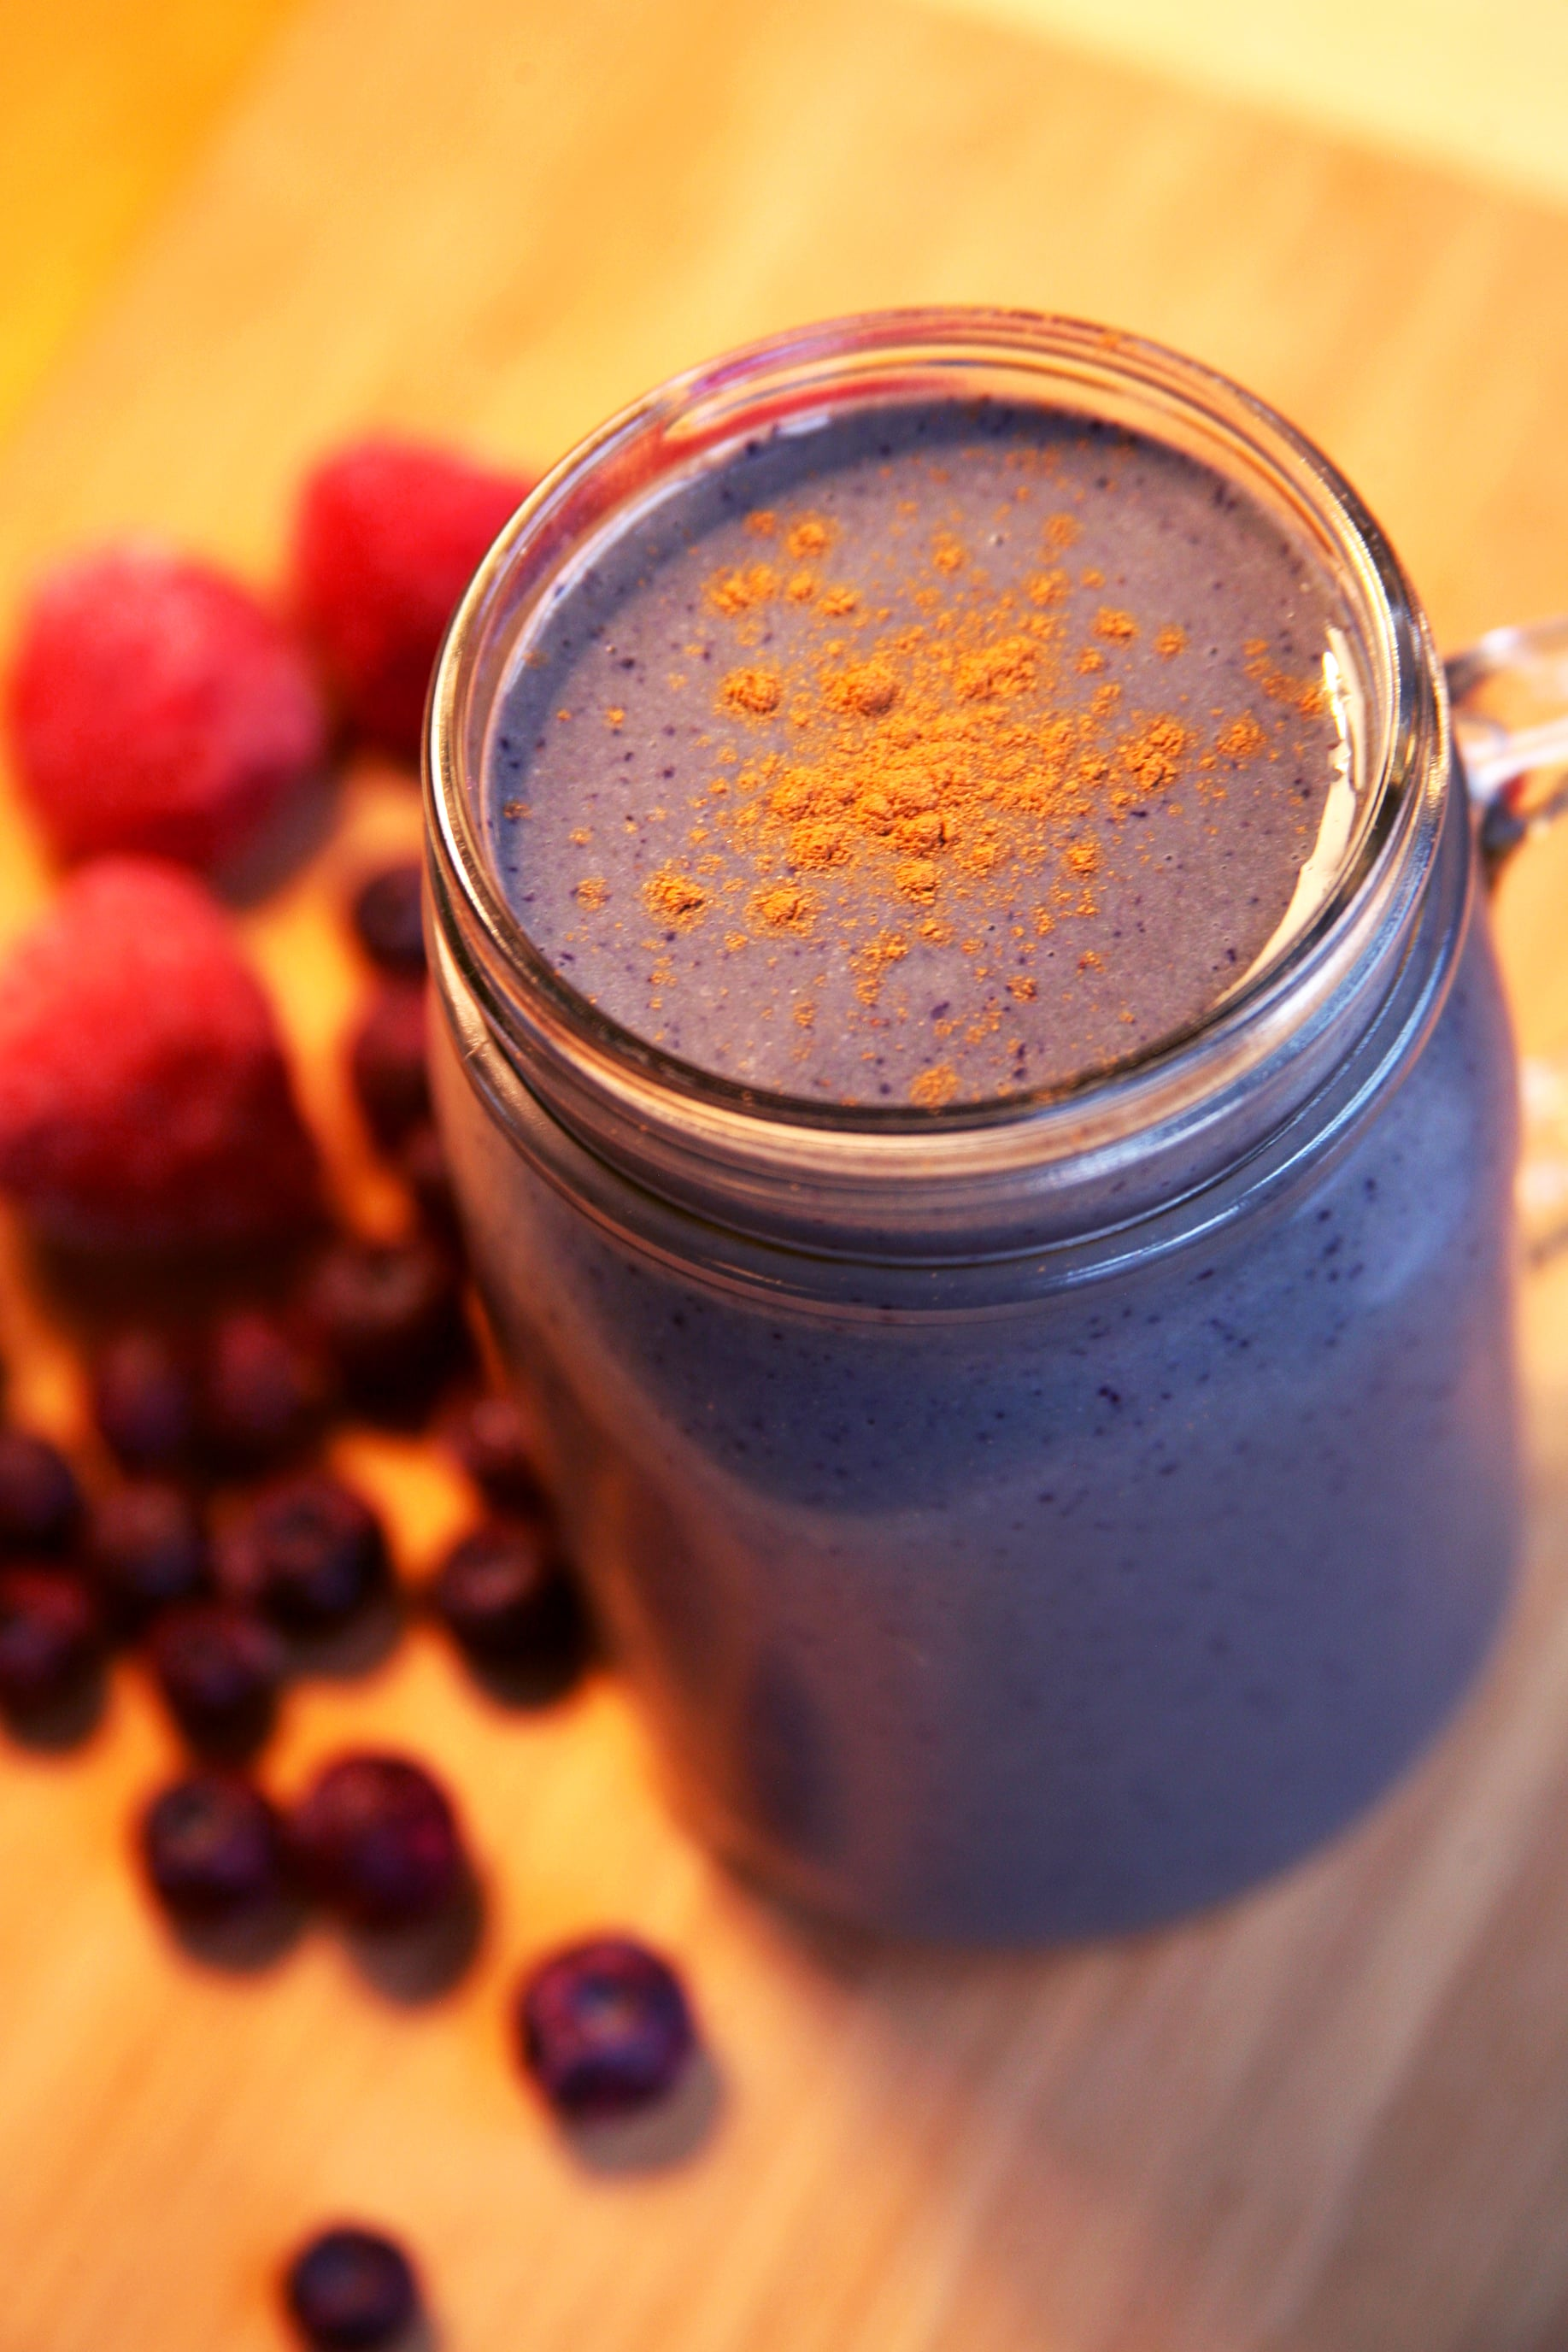 A Low-Sugar Smoothie That Actually Tastes Sweet